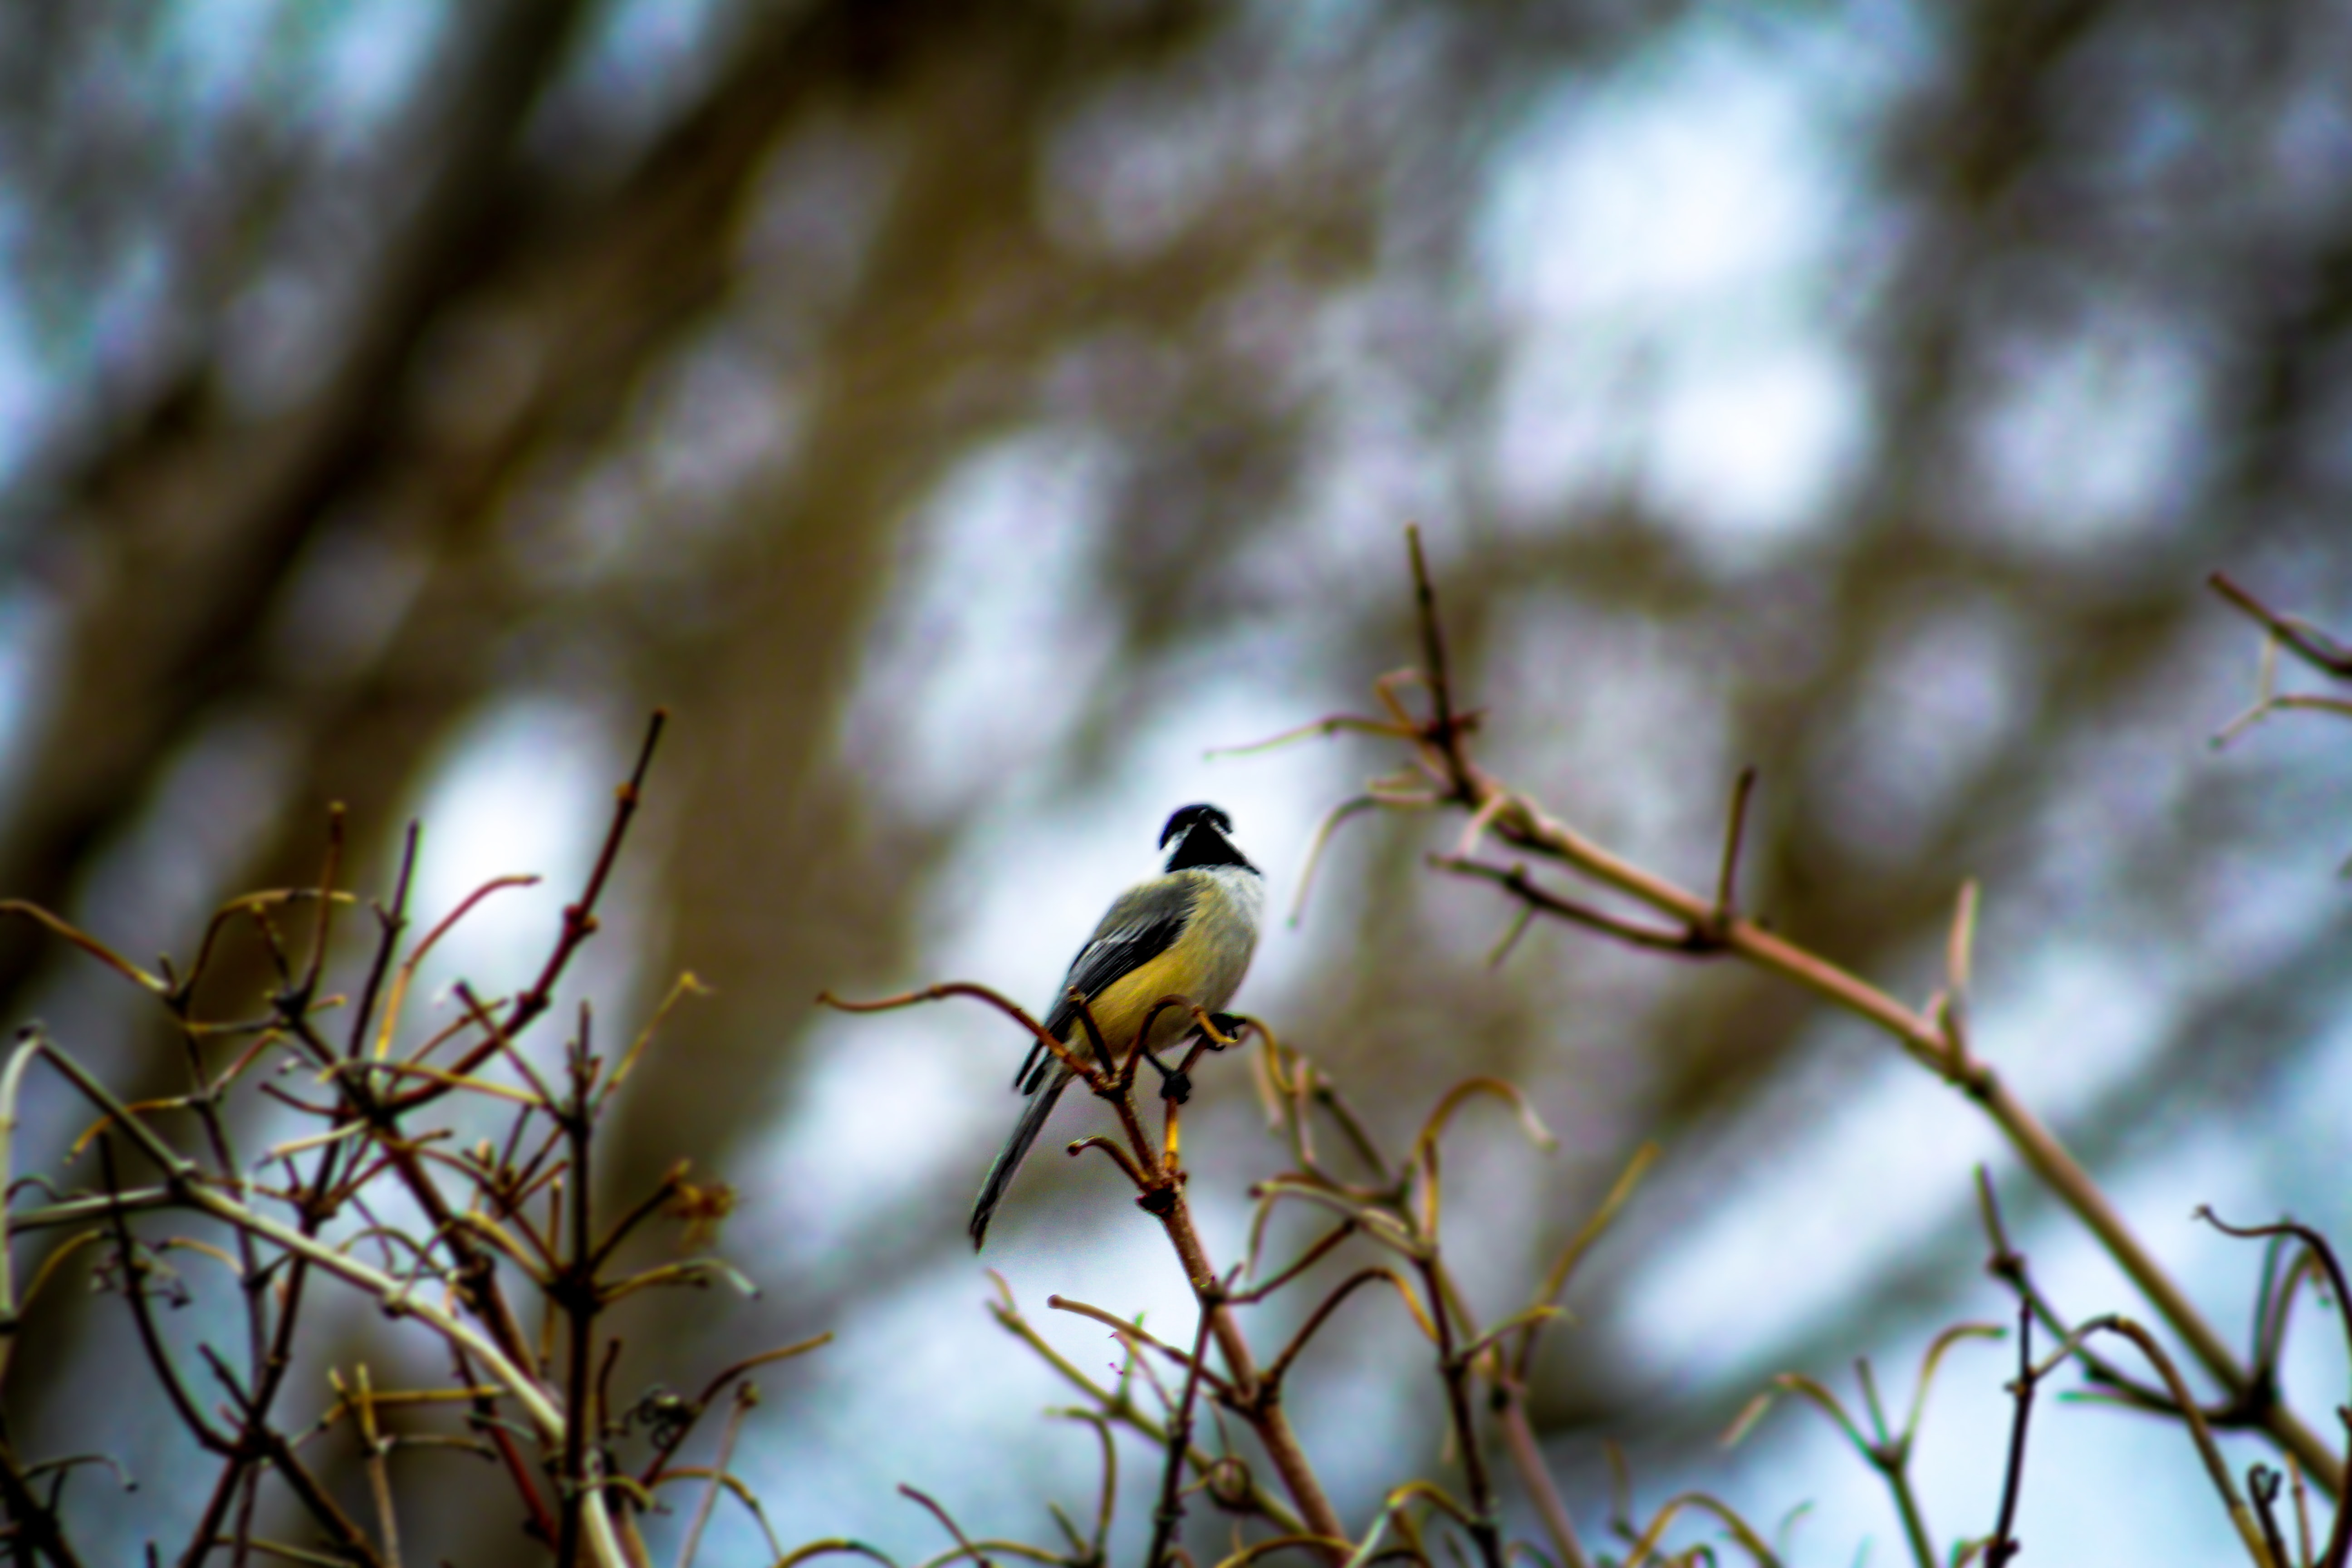 black and yellow bird on the plant